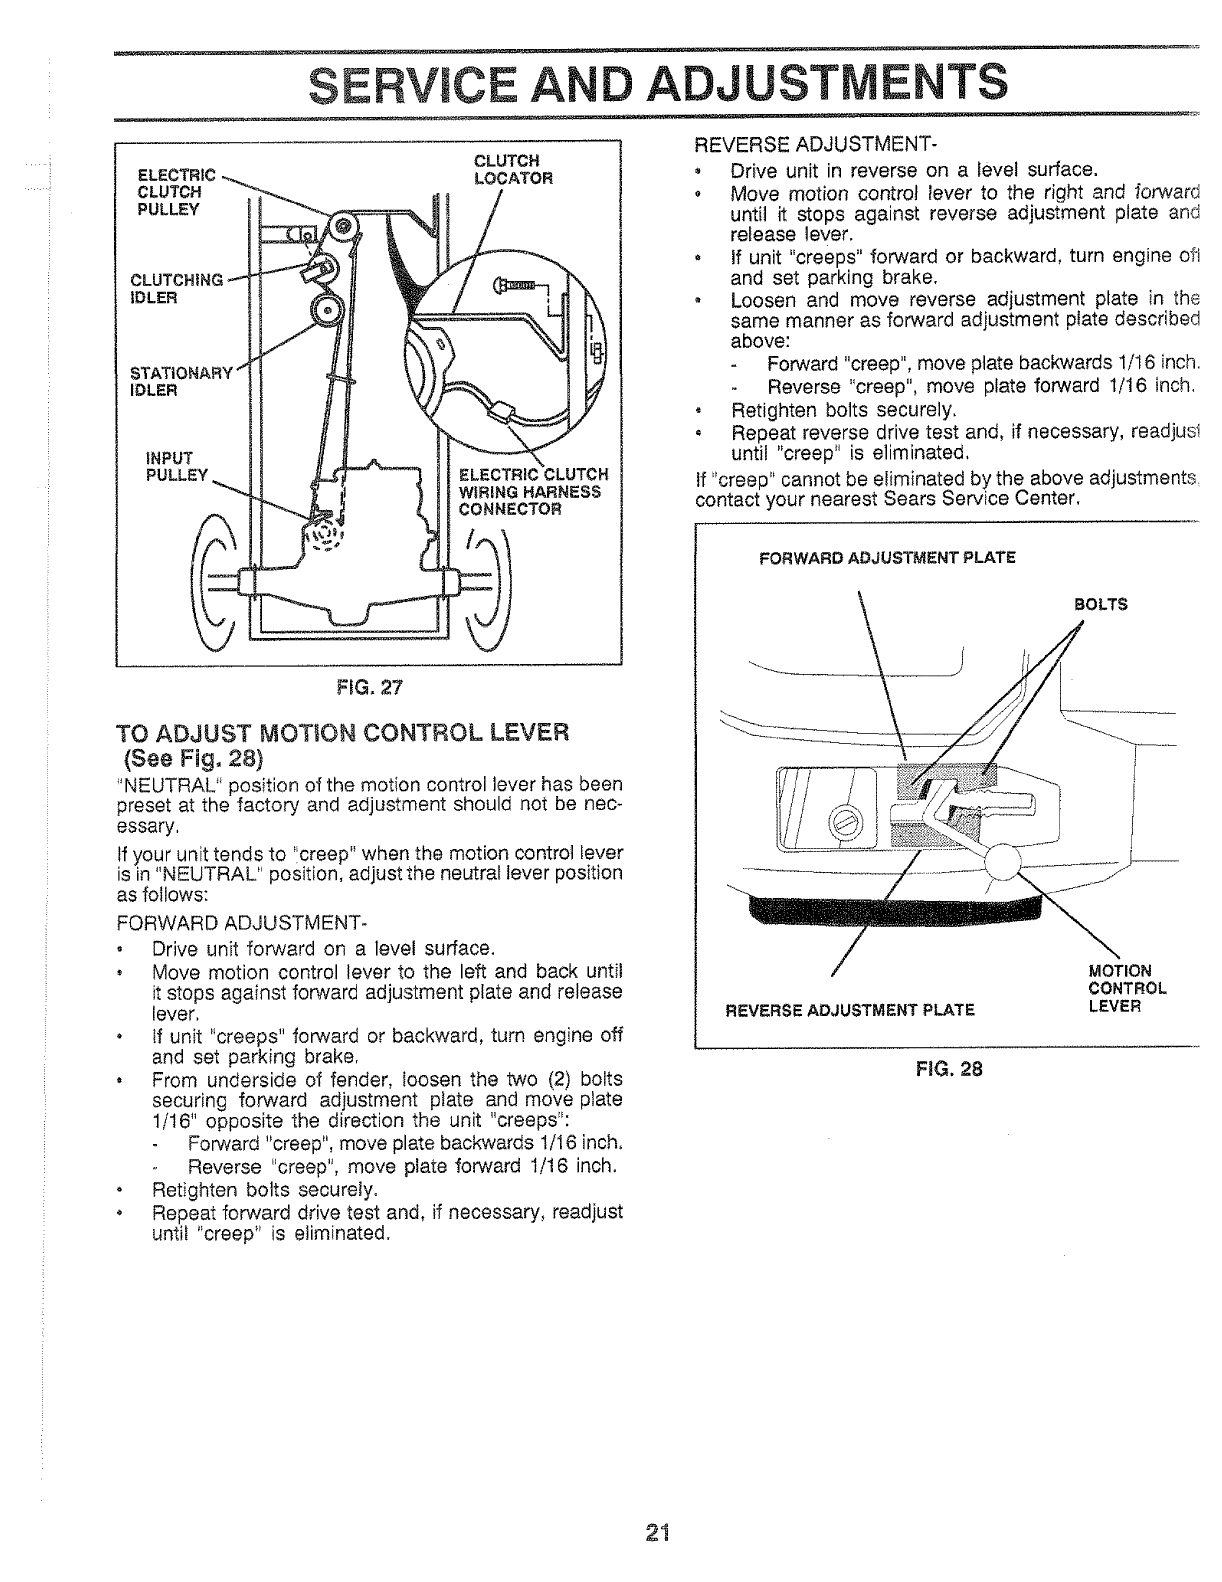 Page 21 of Sears Lawn Mower 917.25559 User Guide